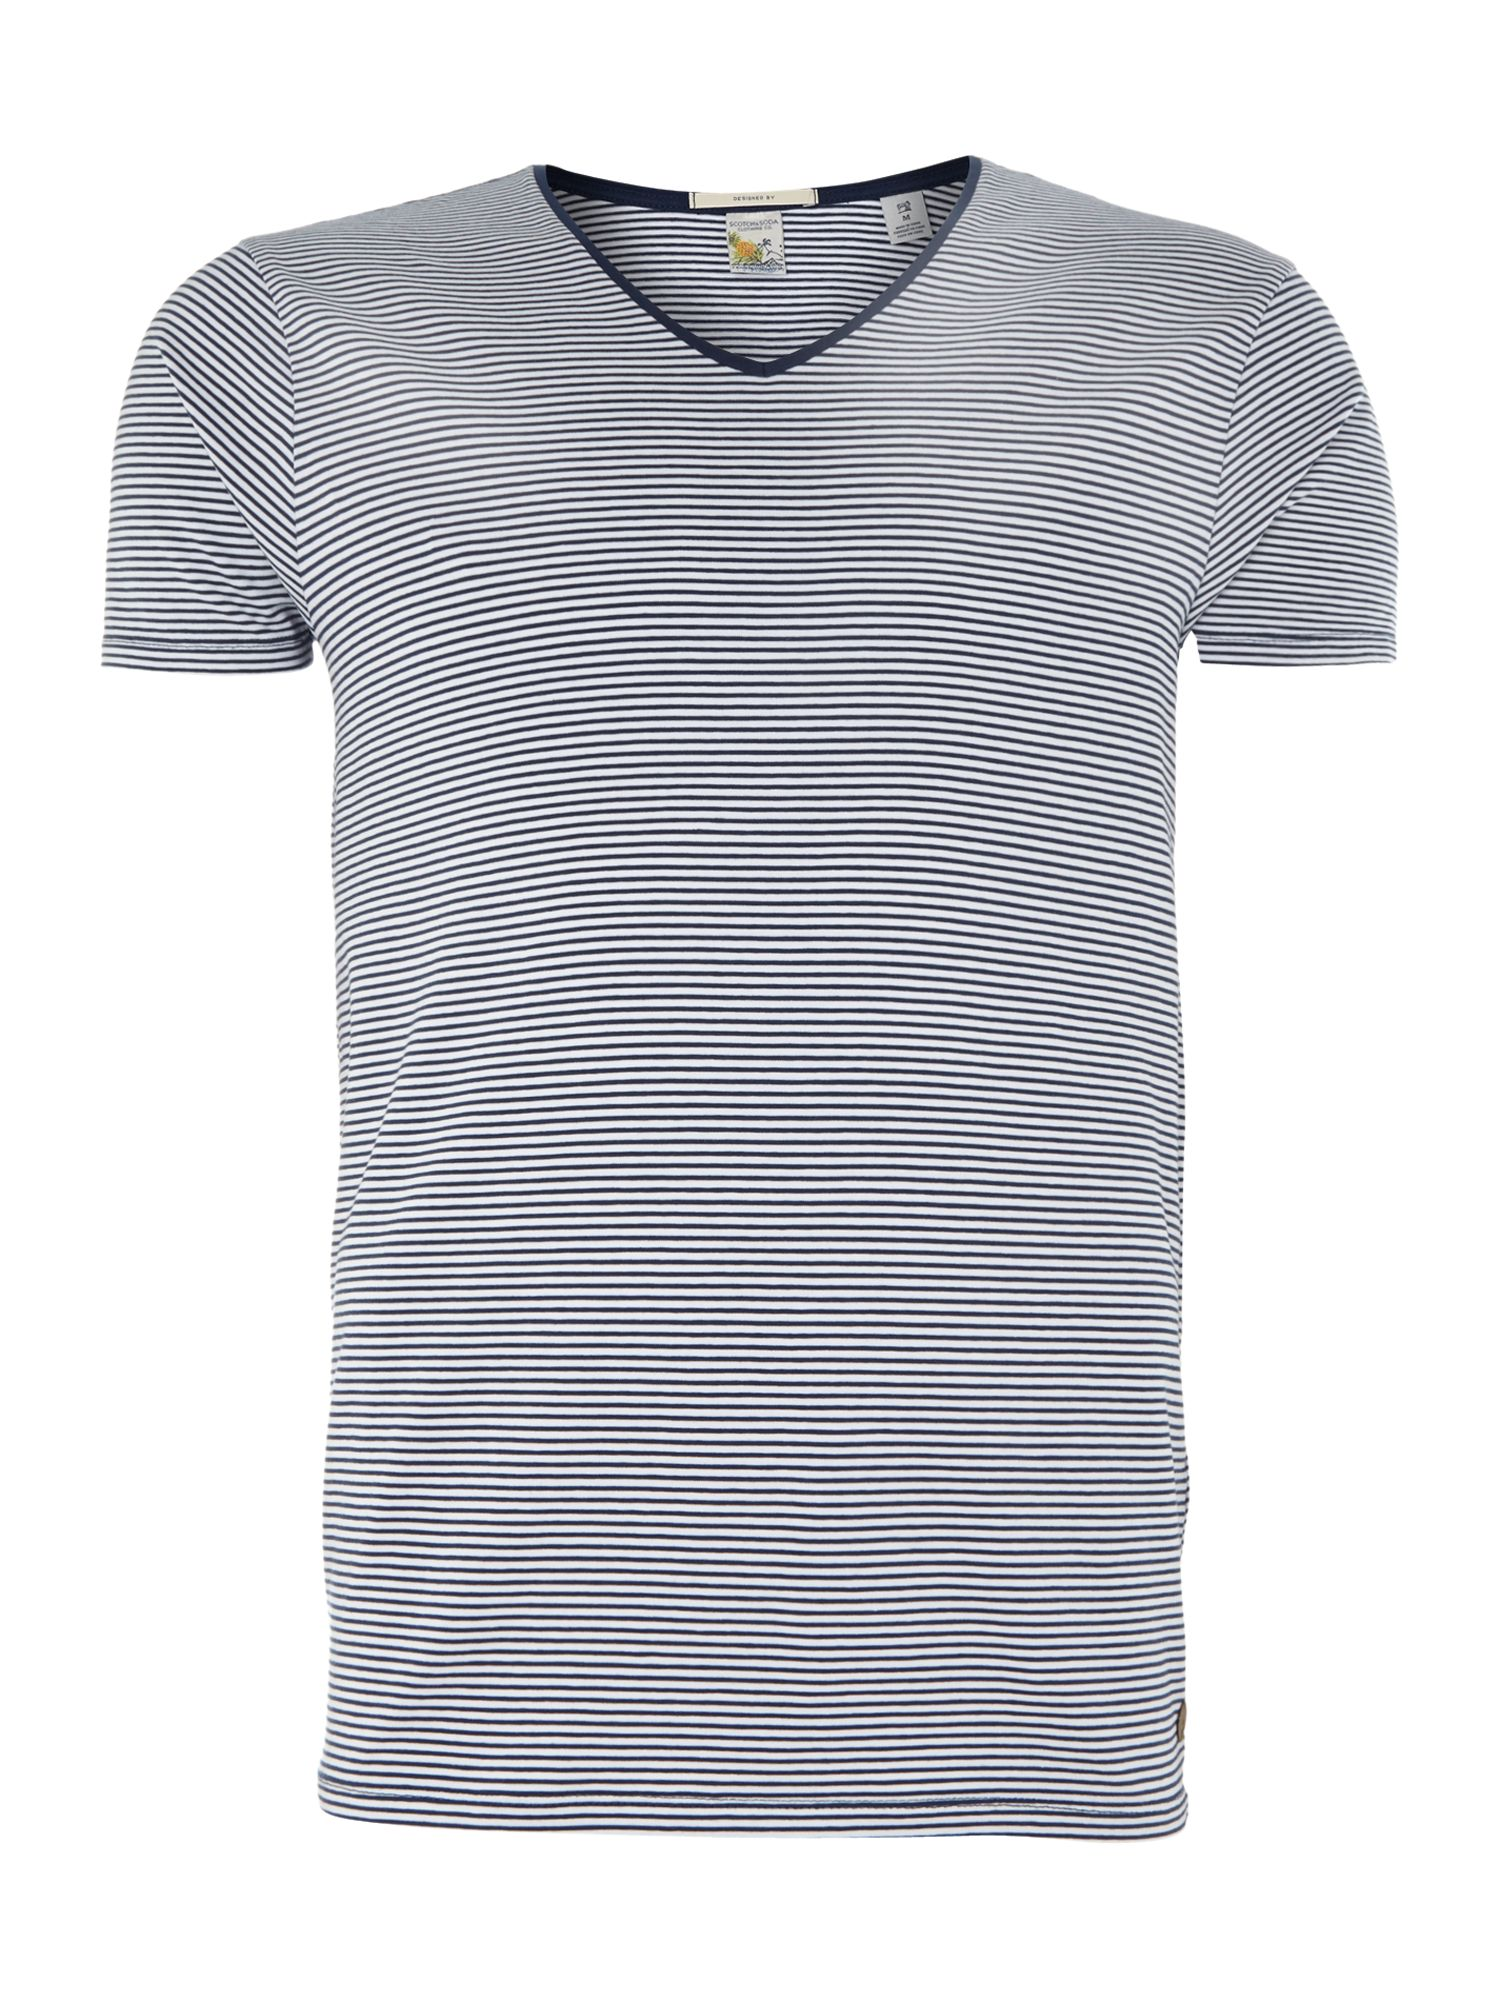 Basic cotton/lycra v-neck tee